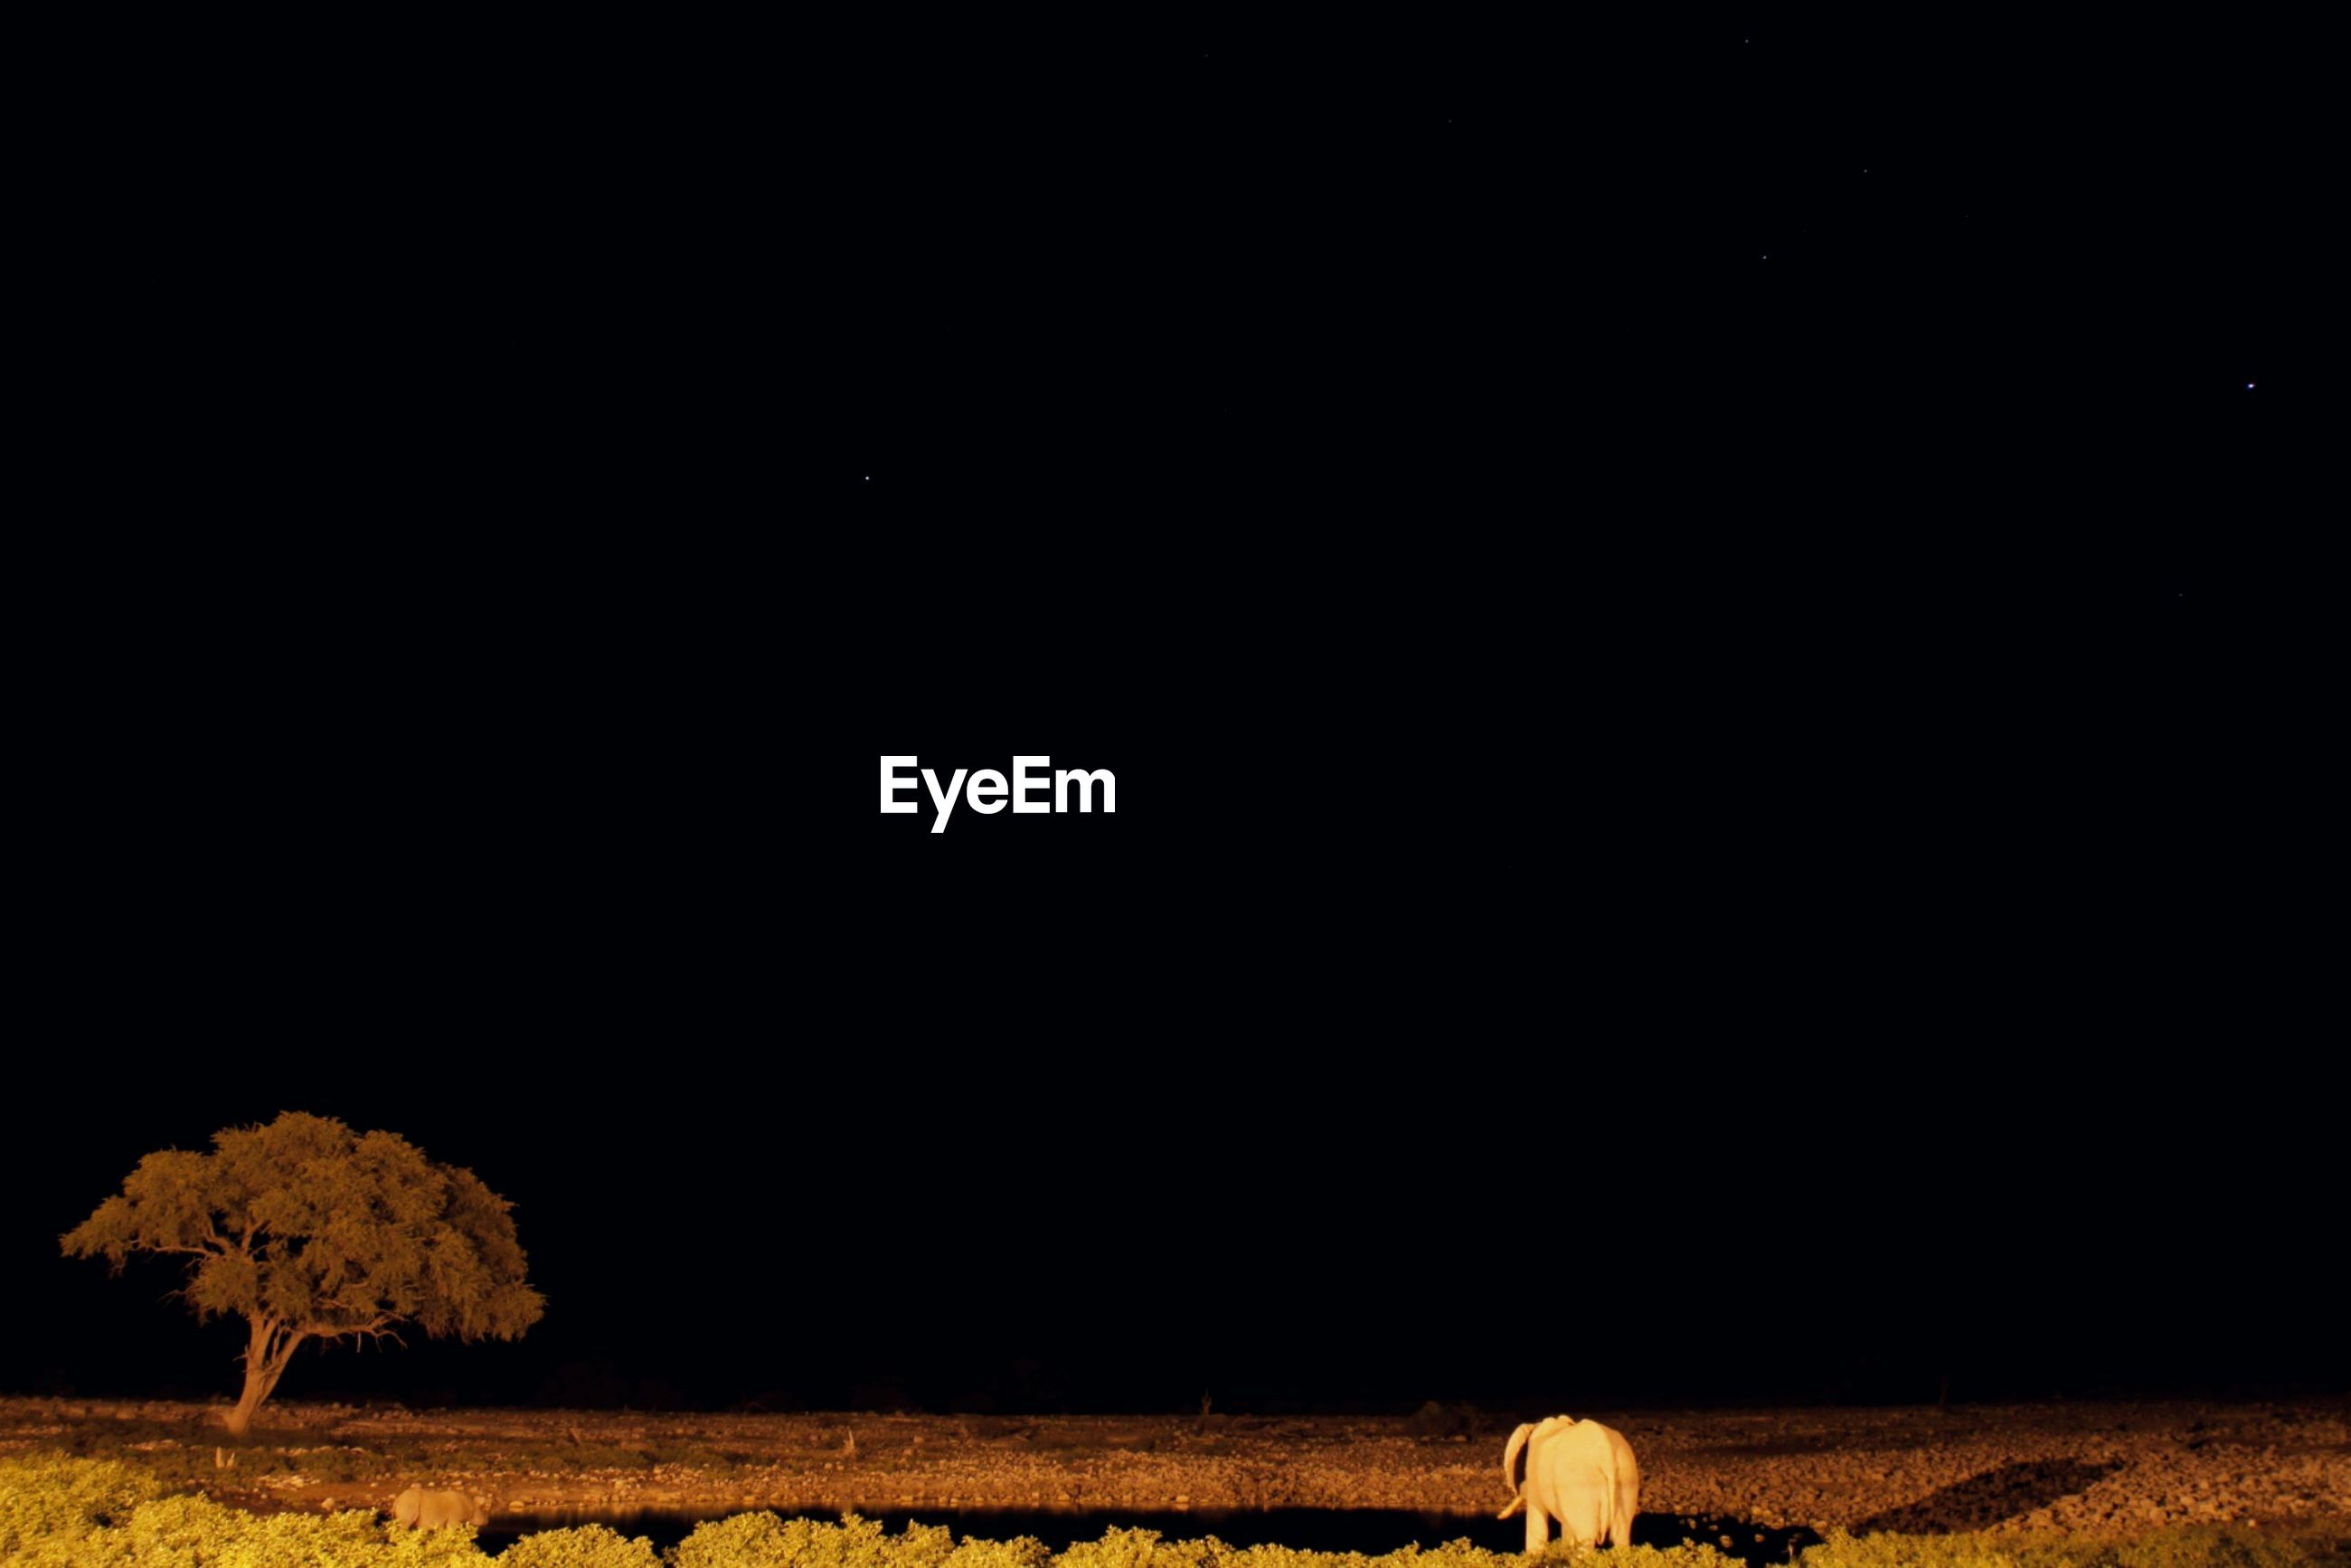 View of an elephant on field at night